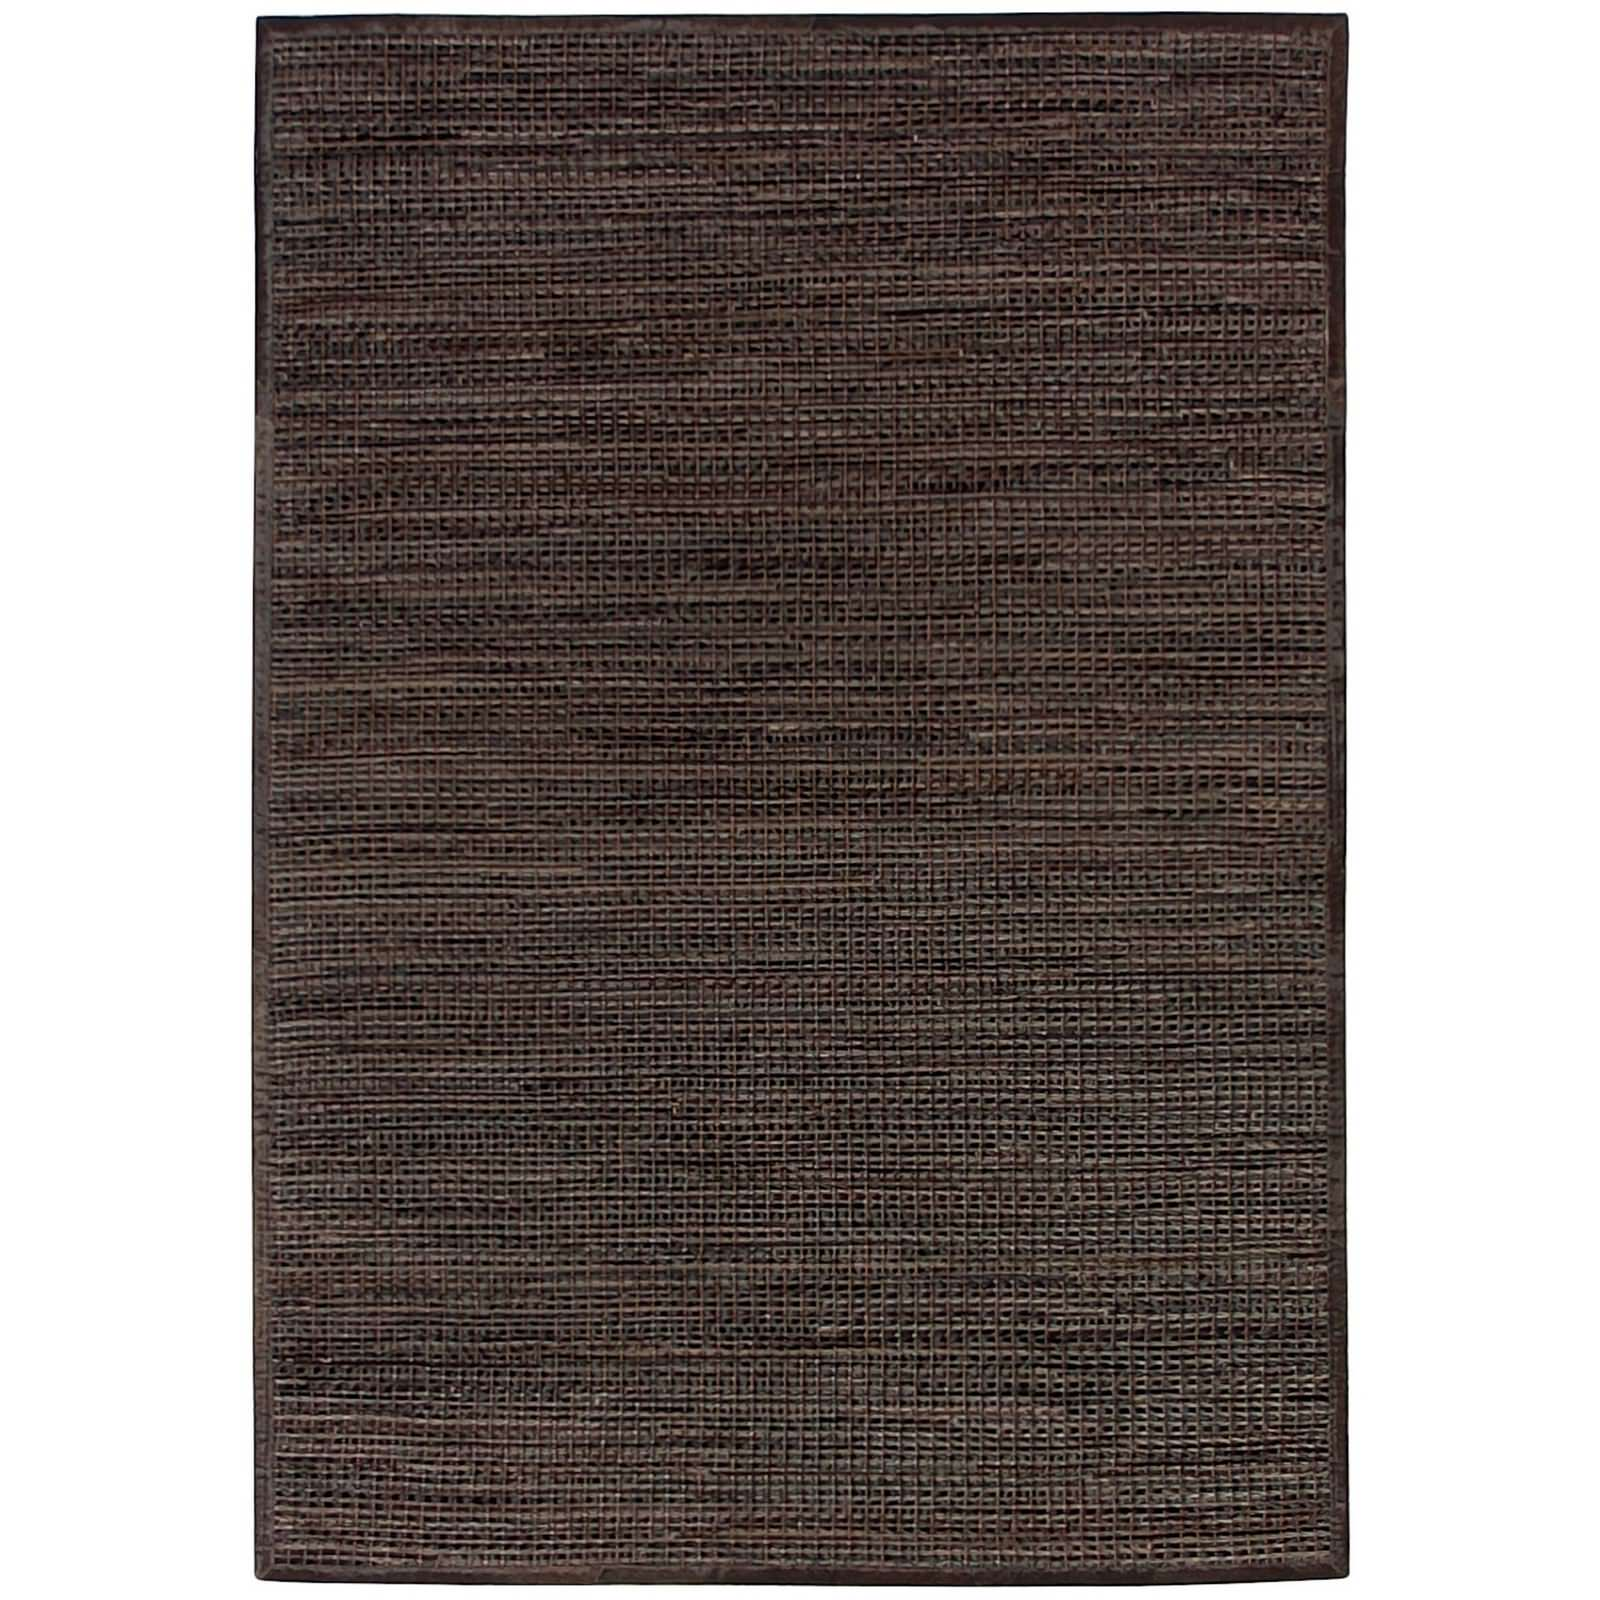 Chase Handwoven Hide & Leather Rug, 200x300cm, Cocoa